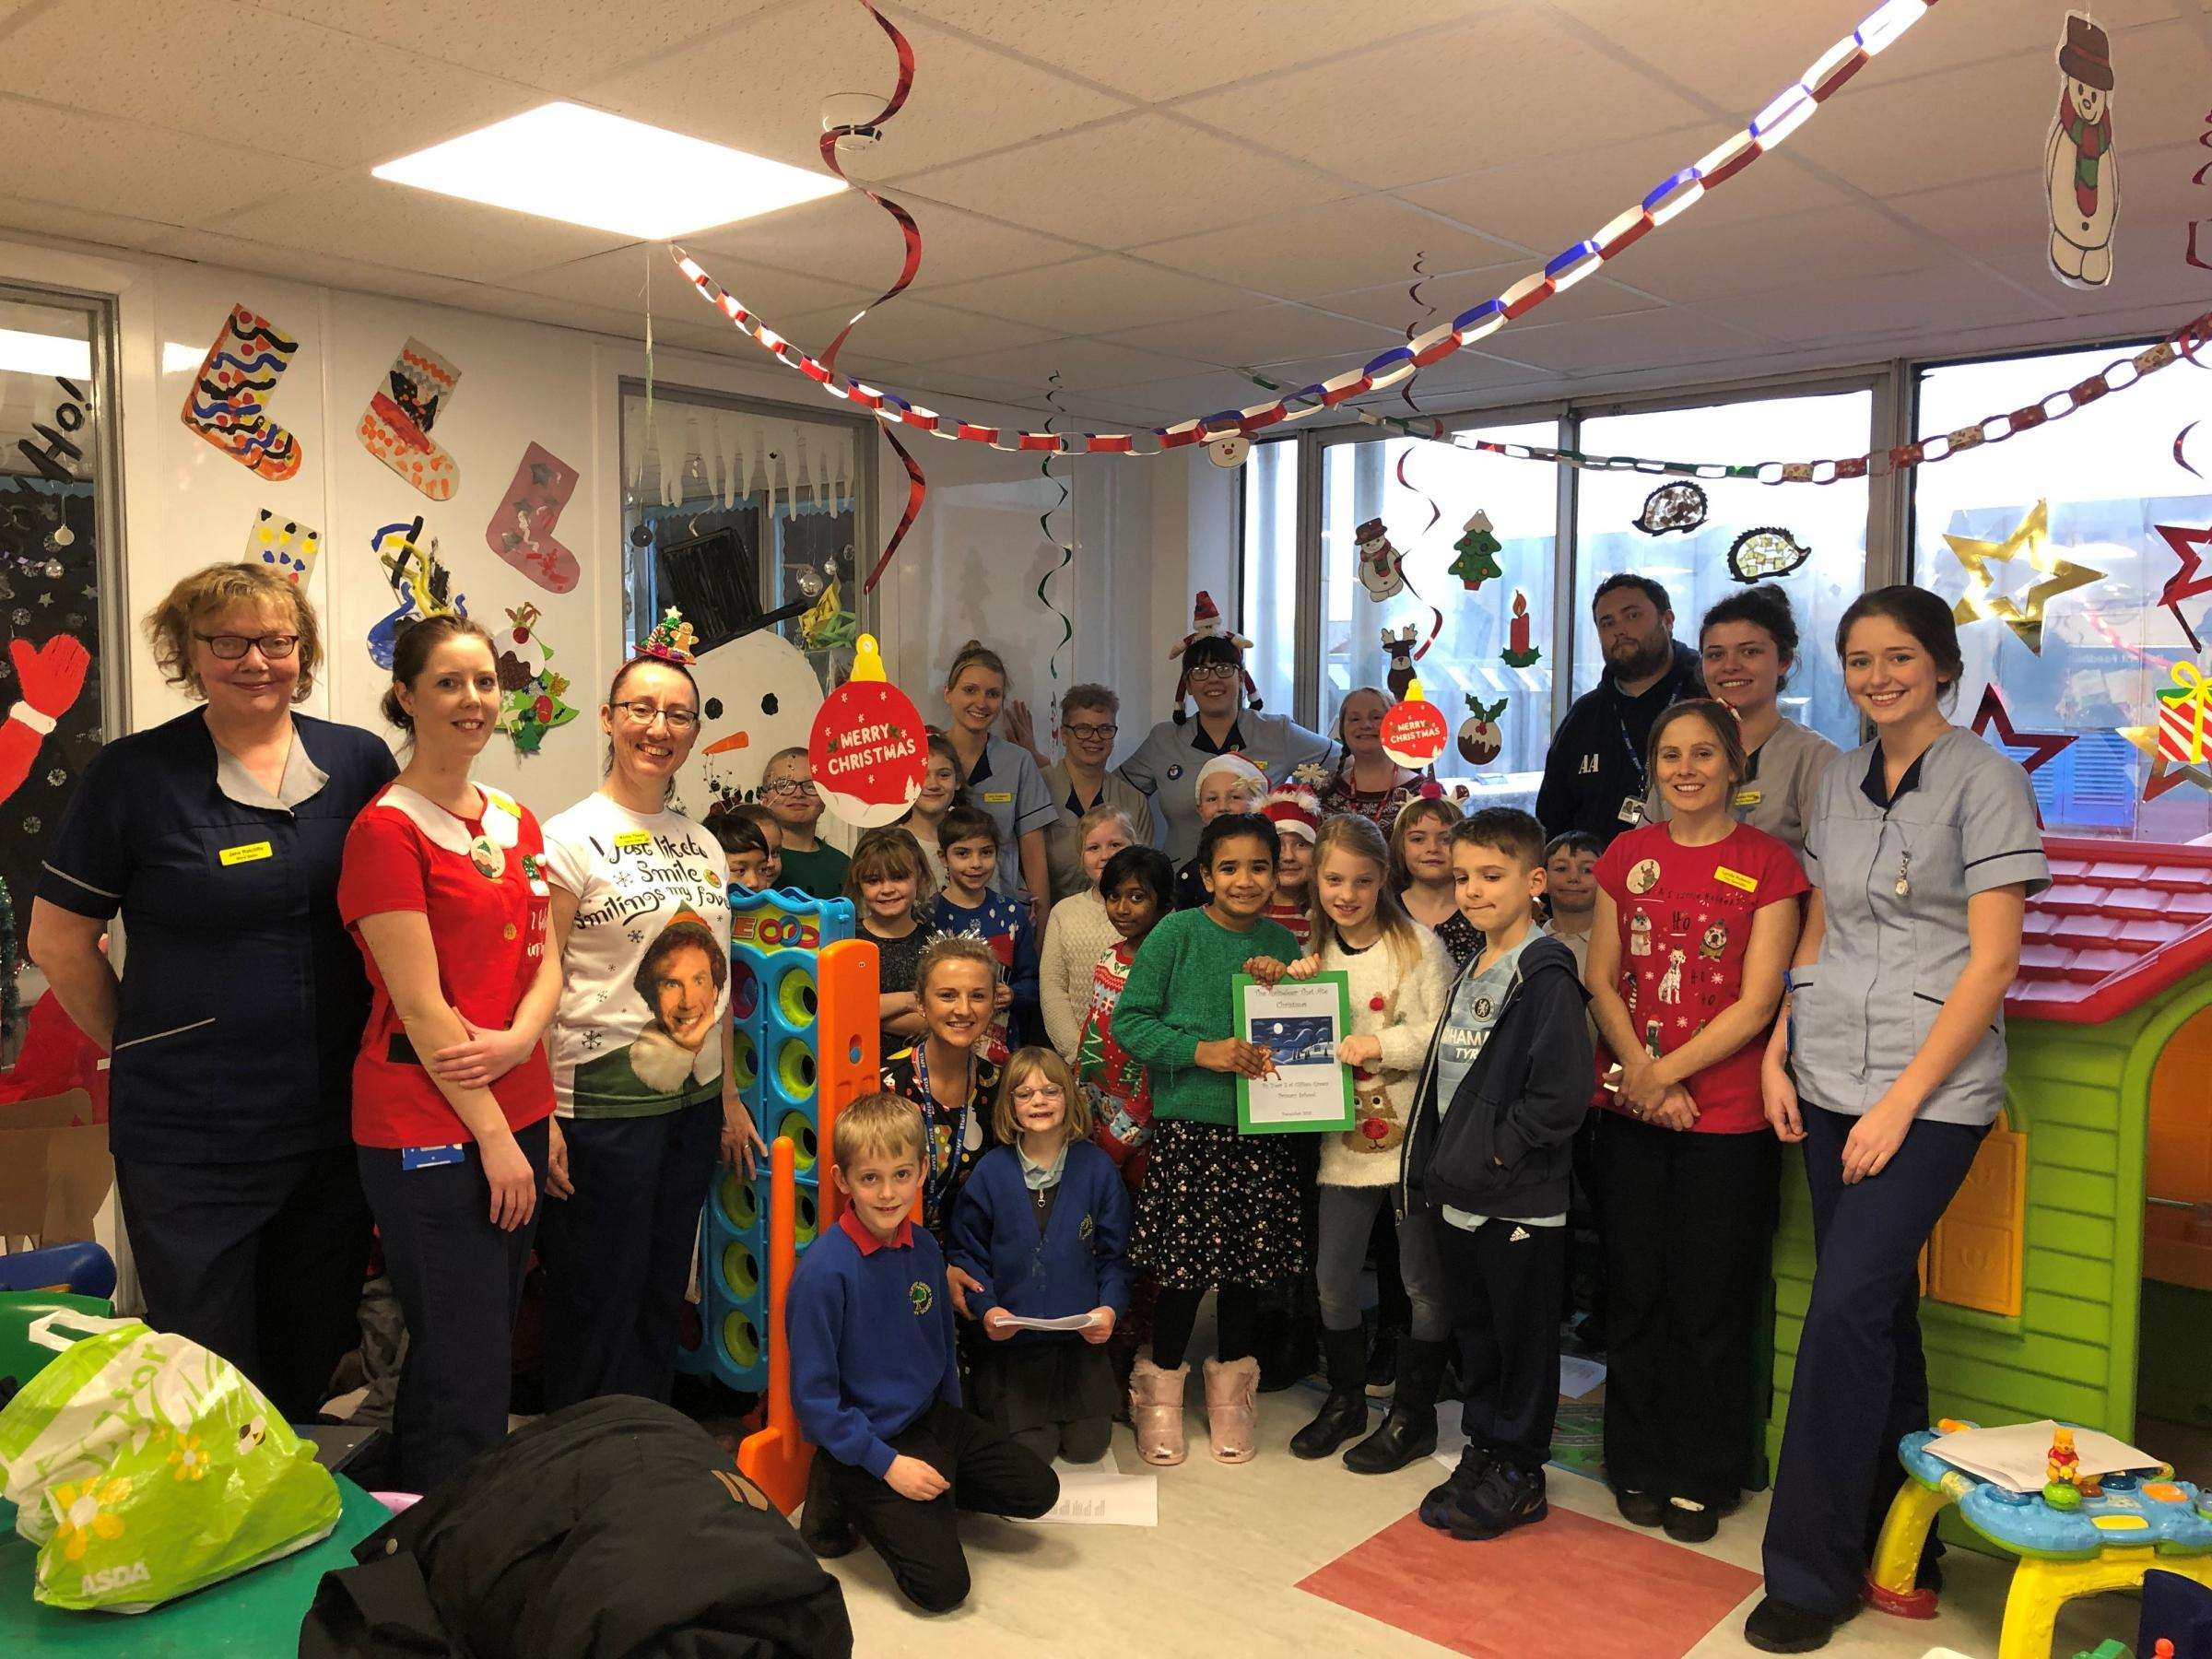 Leanne Haycock (2nd left) with staff and children on the Children's Ward and Clifton Green Primary School who brought gifts and performed their Christmas songs on the ward